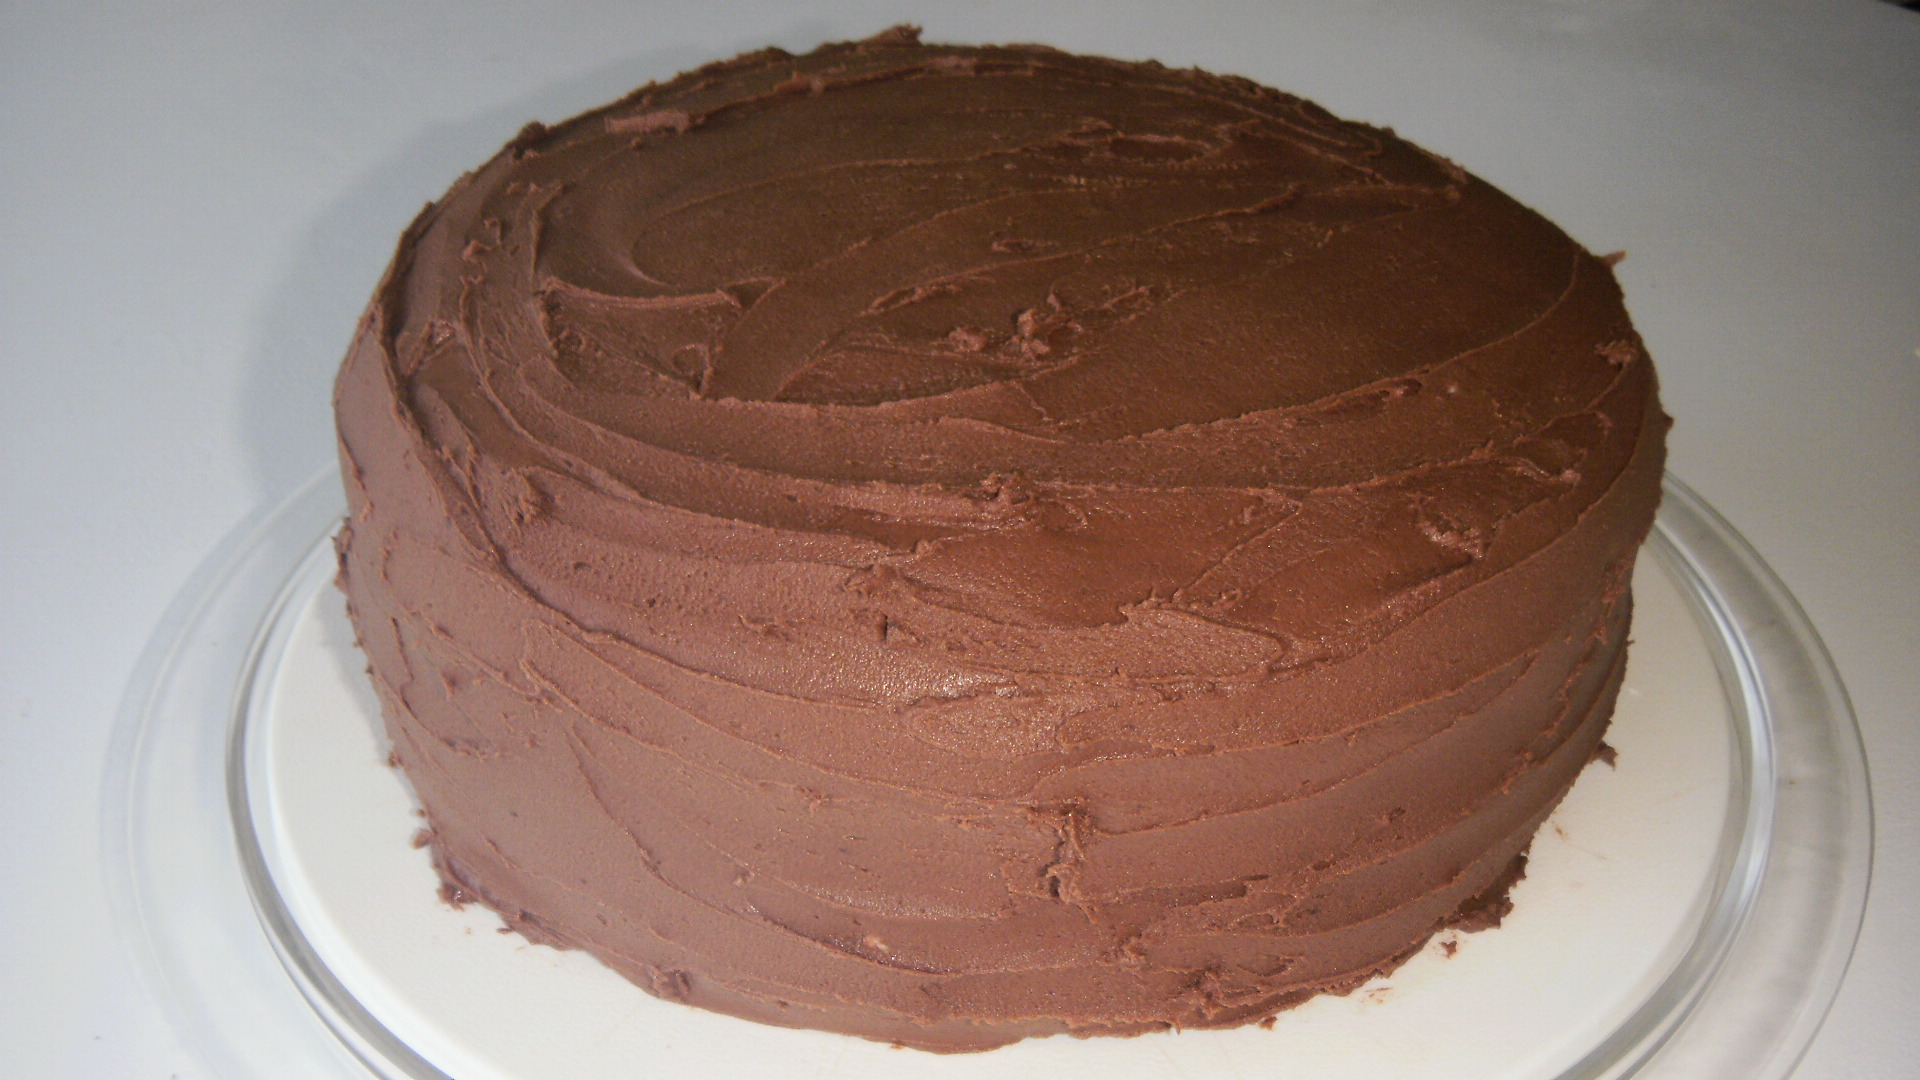 Cake With Icing In It : Dairy, Egg and Peanut/Tree Nut Free Chocolate Birthday ...